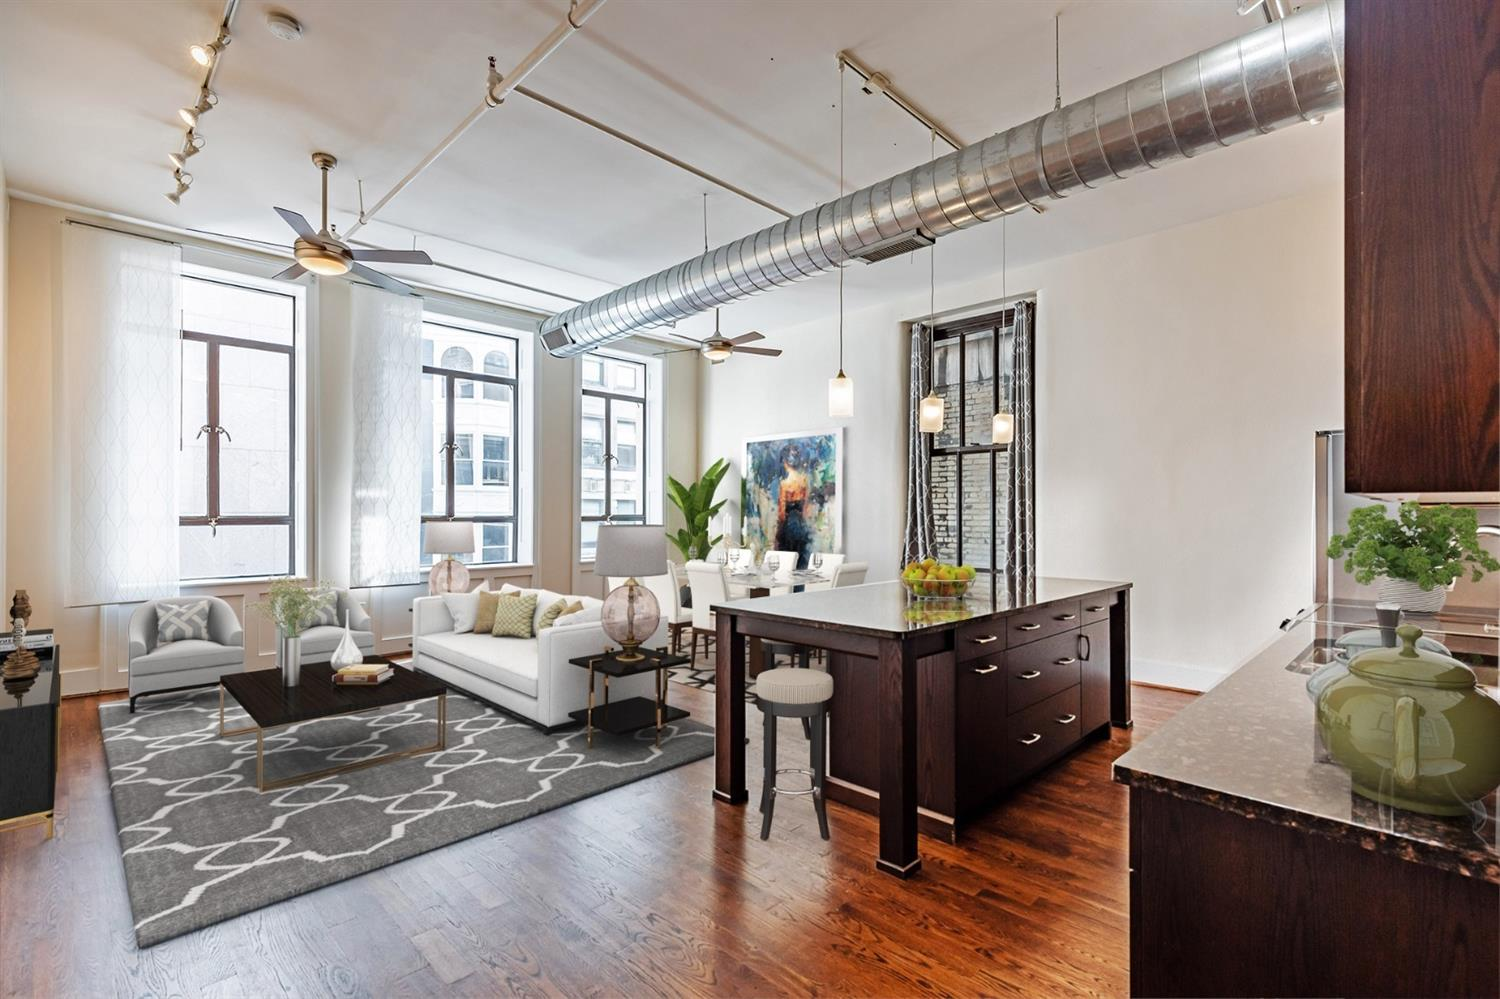 Spacious entertaining options from this light filled condo with huge windows looking out to Vine Street.  The parking garage is directly across the street with the elevator coming right to the valet station. Windows in this historic building where retro fitted with double pain insulated glass.